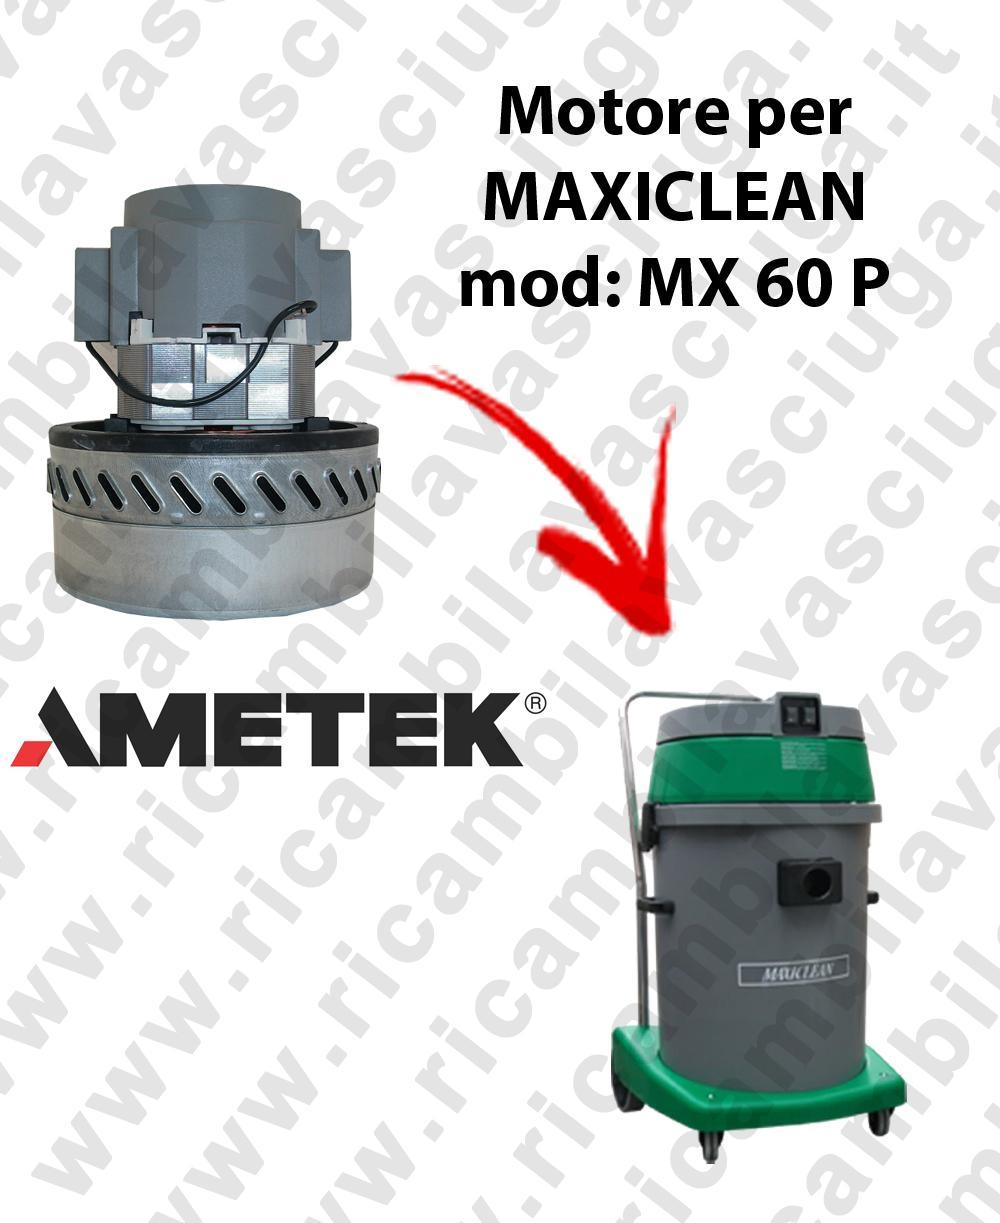 MX 60 P AMETEK vacuum motor for wet and dry vacuum cleaner MAXICLEAN